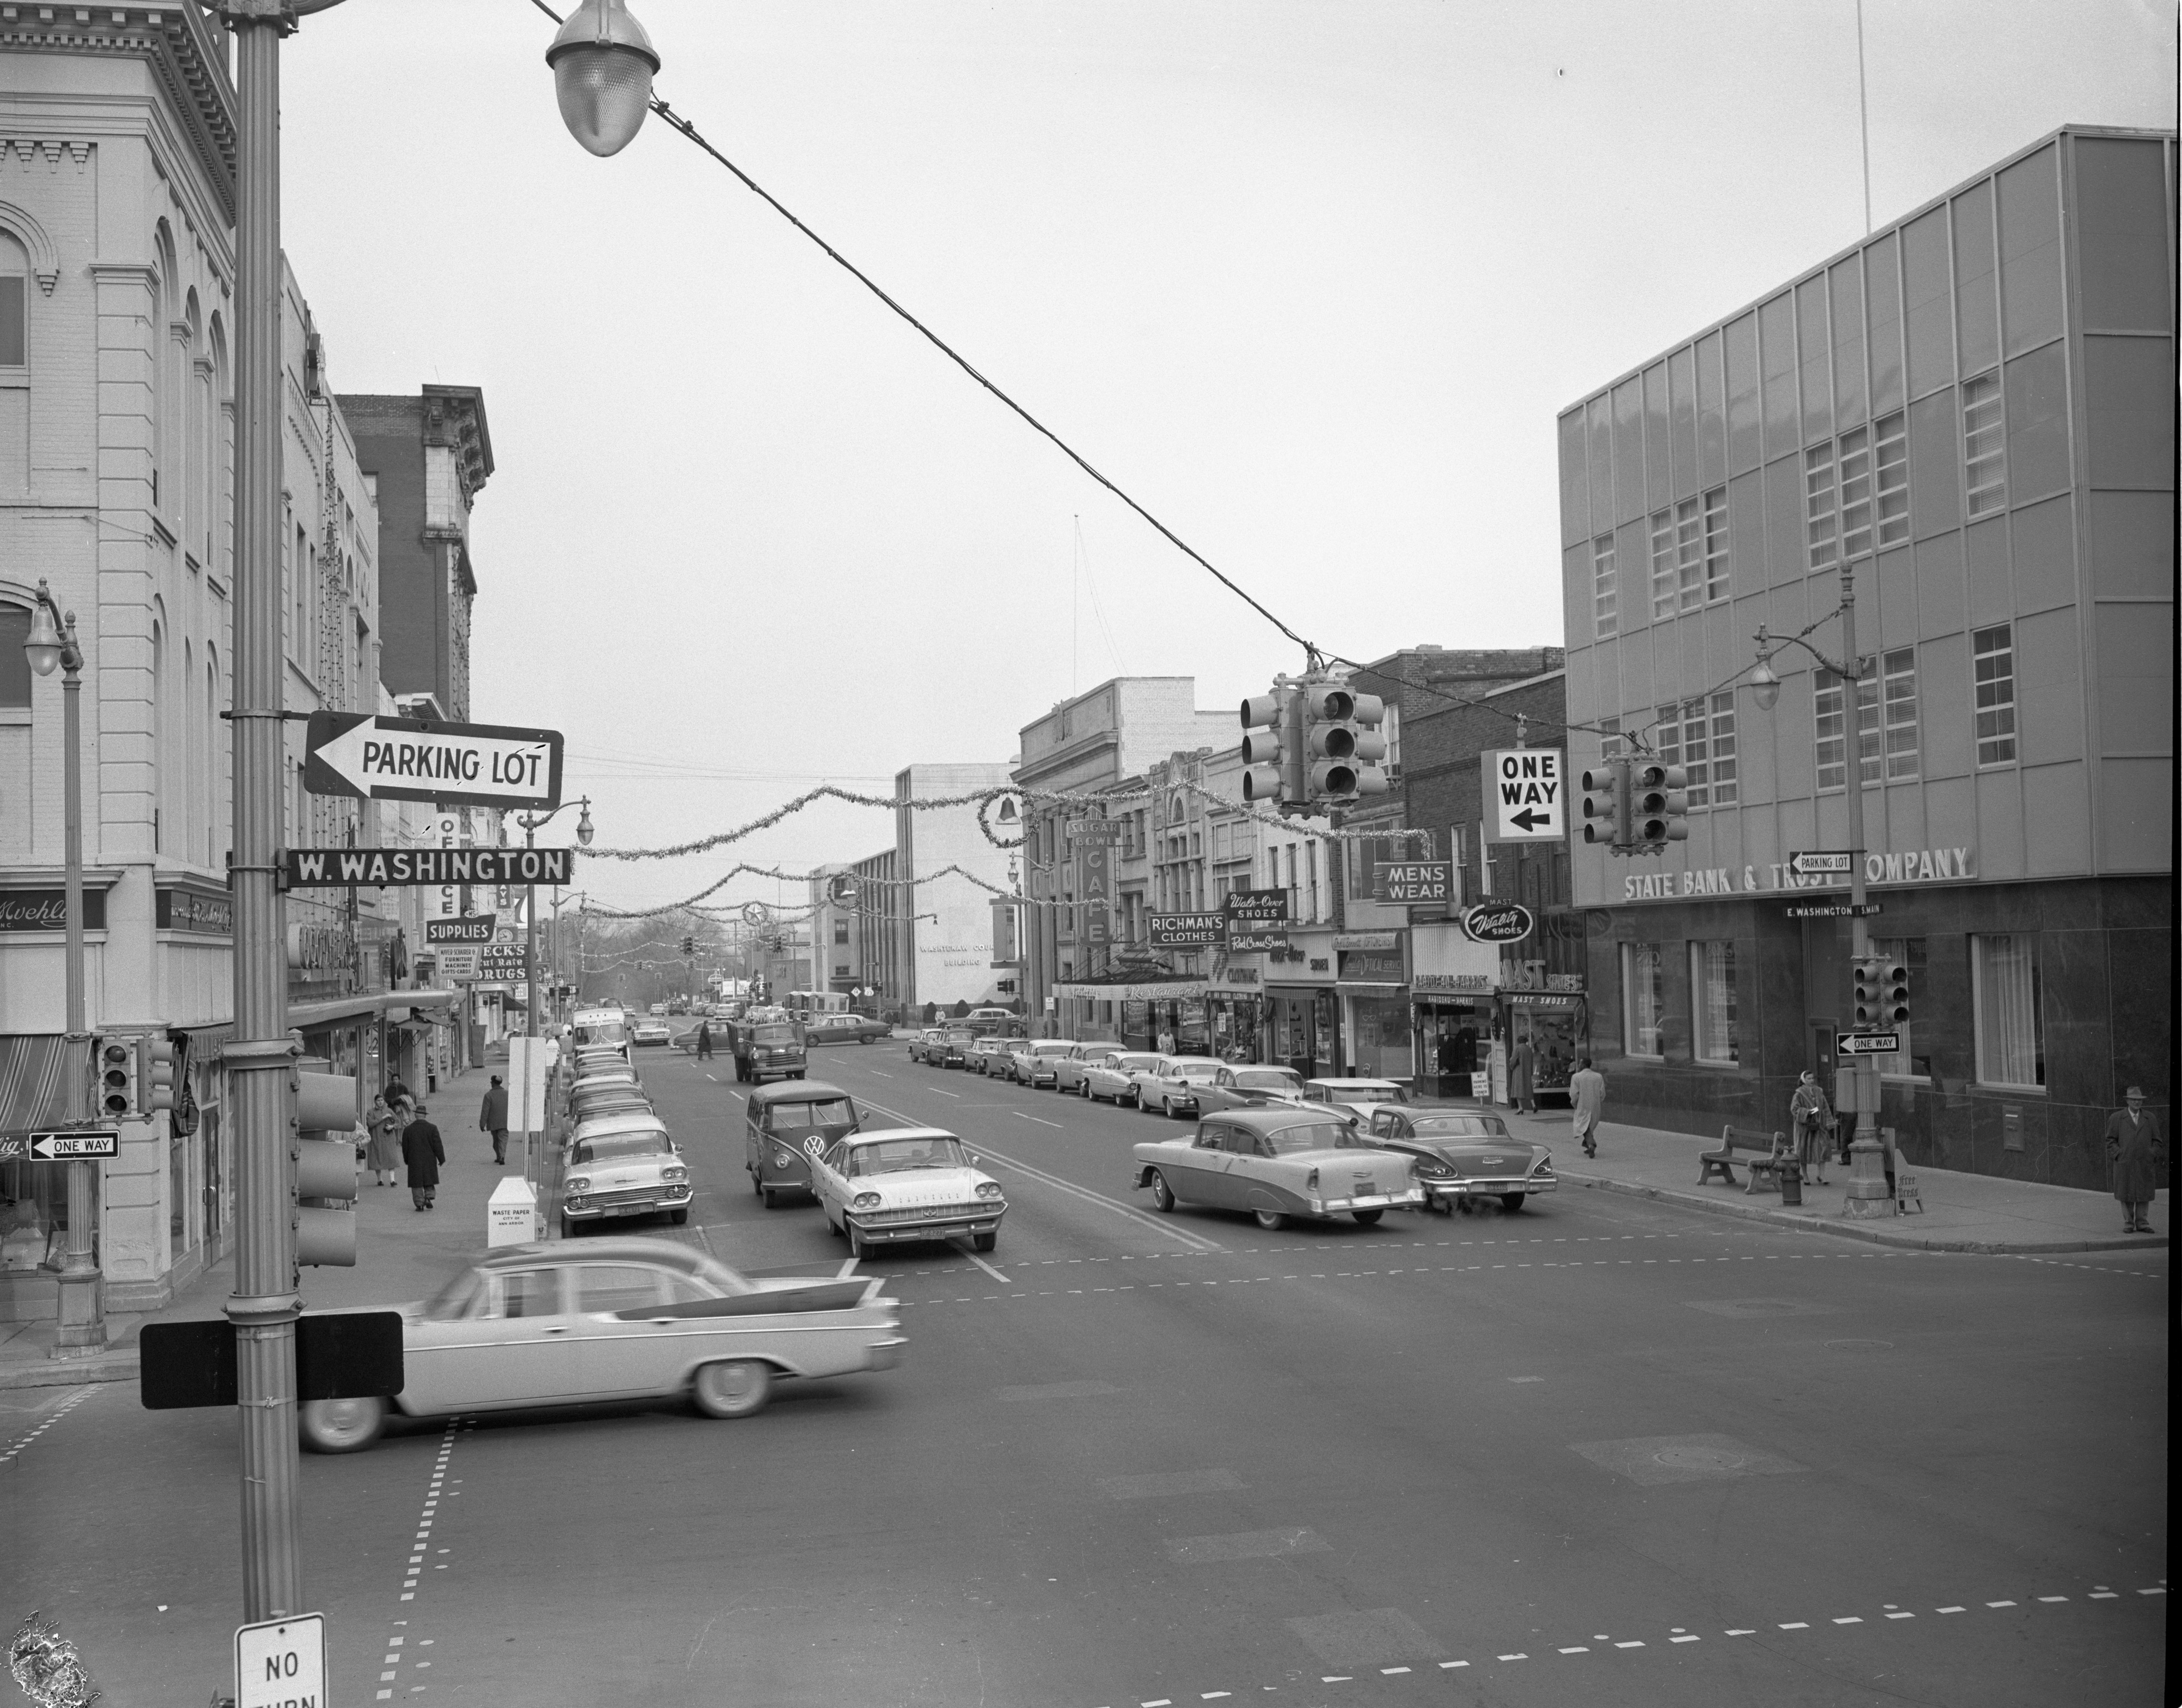 Christmas Decorations On Main Street, November 1959 image